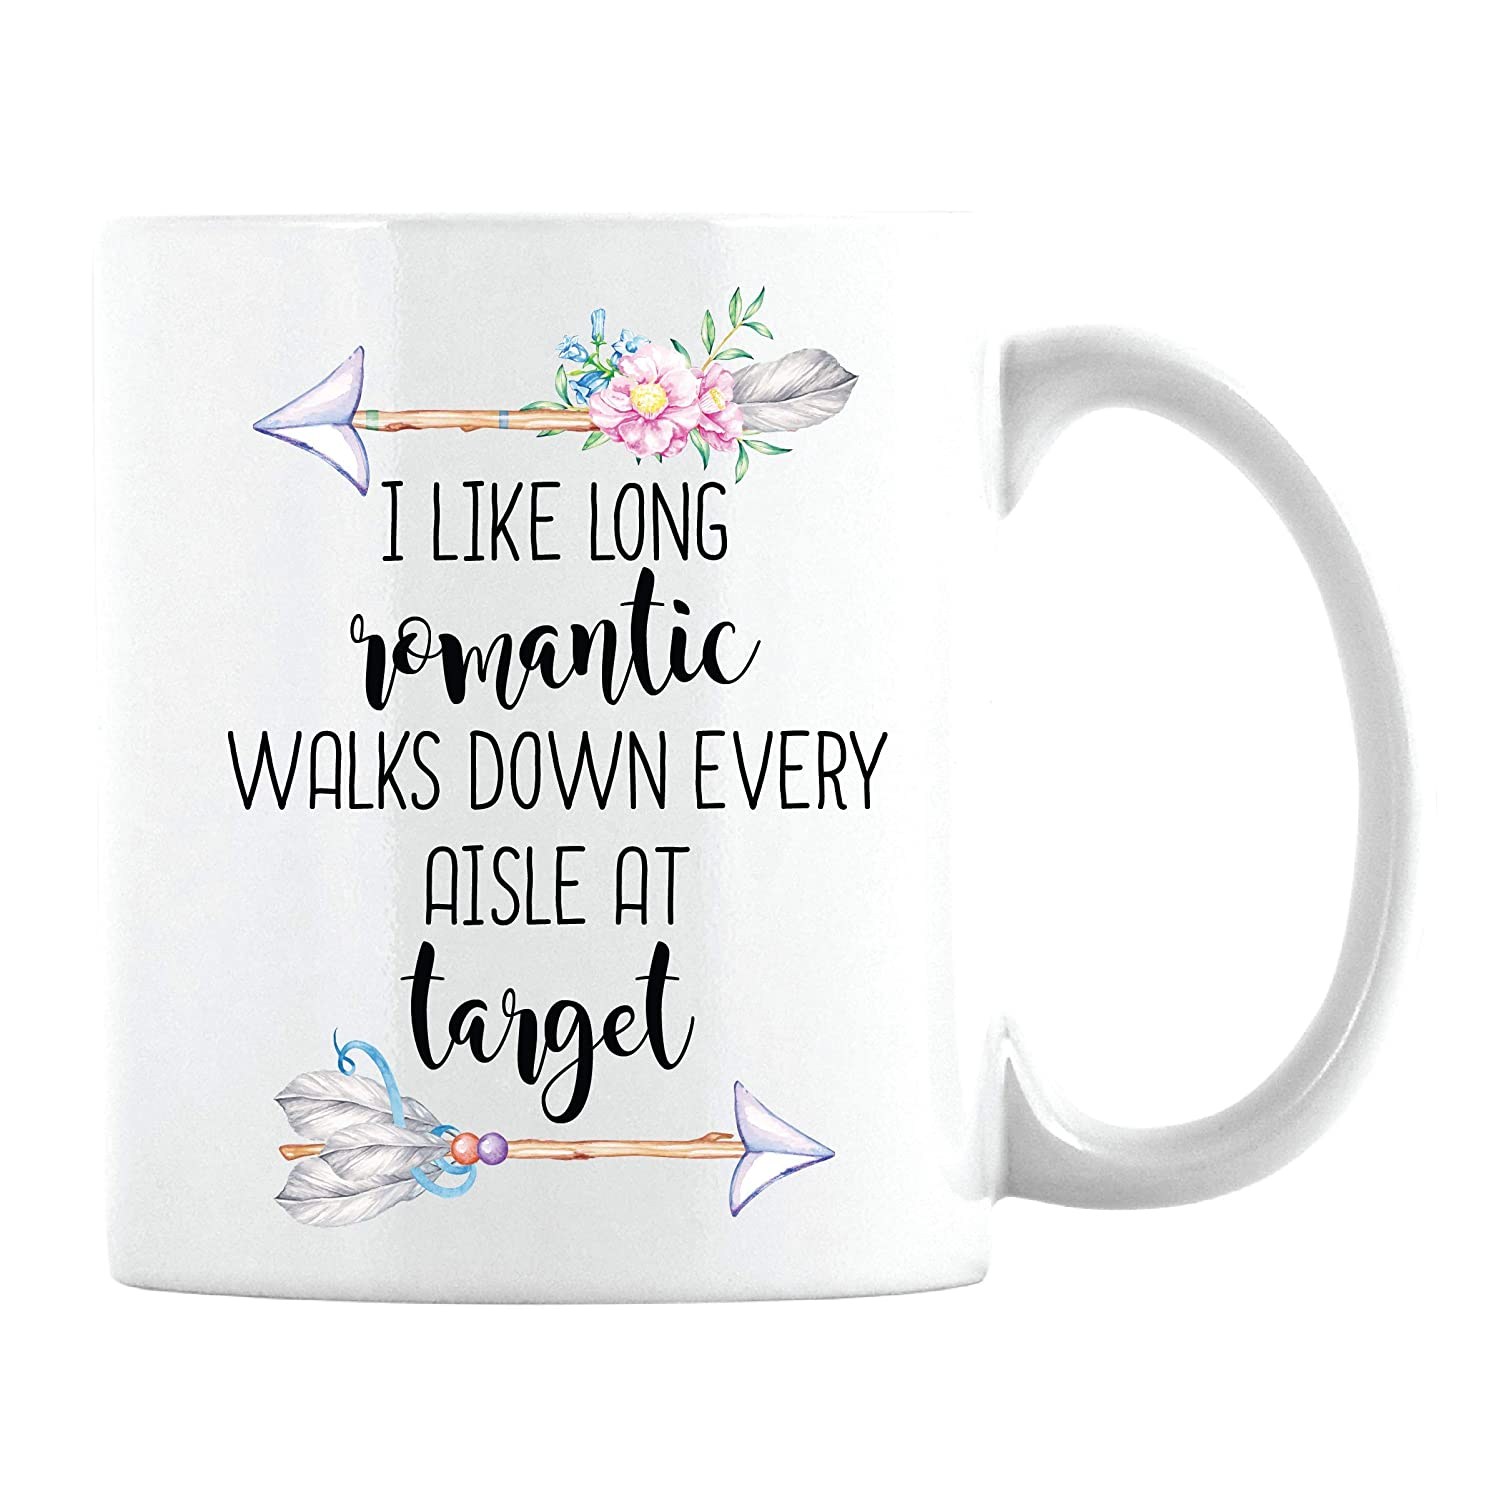 Target Lover Gifts I Like Long Romantic Walks At Target Coffee Mug Christmas Birthday Gift For Her Mom Wife Girlfriend Sister White Cup 11oz